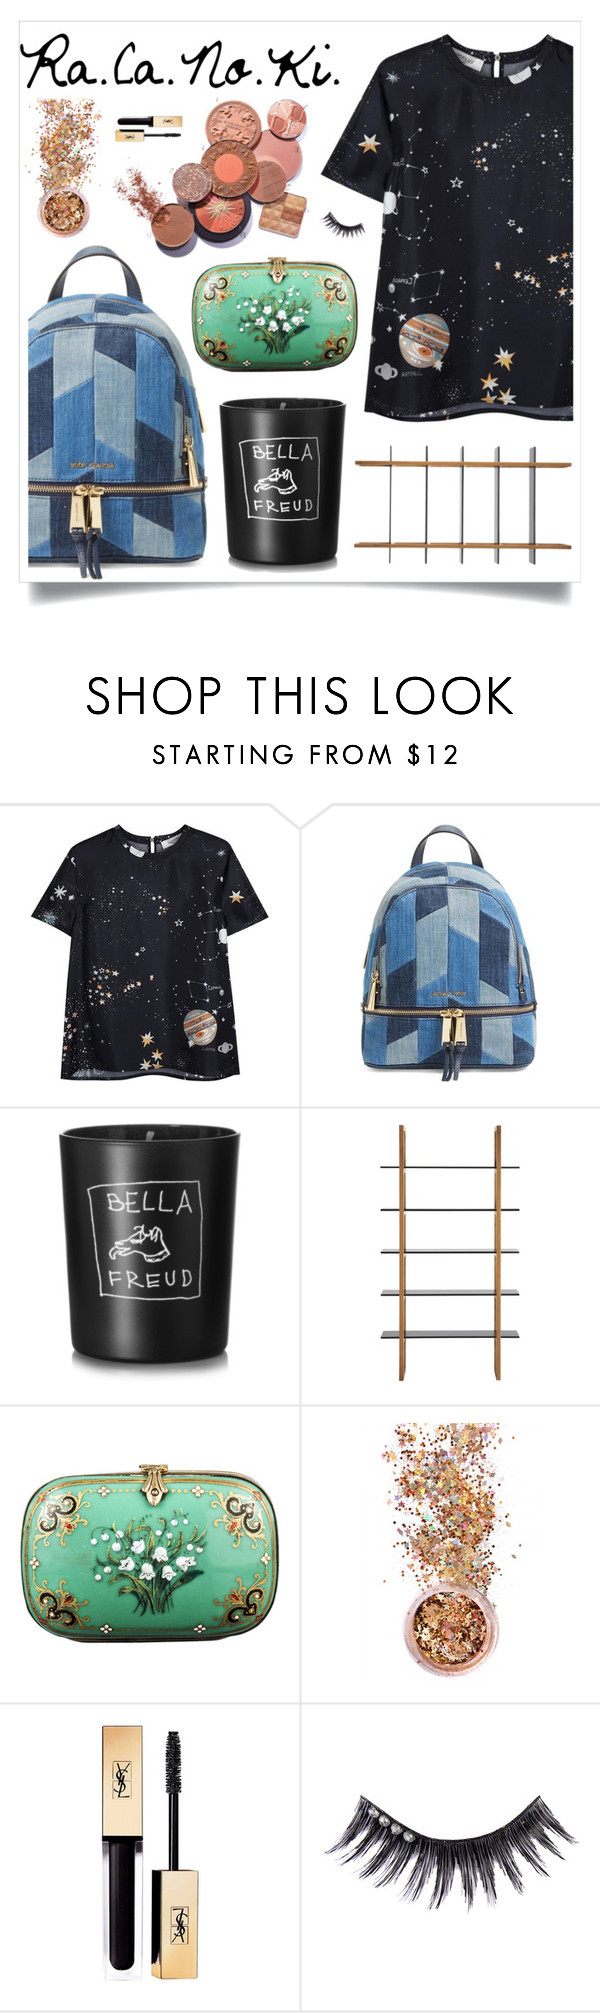 """""""I'm Kinda Just Everywhere"""" by racanoki ❤ liked on Polyvore featuring Valentino, Michael Kors, Bella Freud, Alexis Bittar, In Your Dreams, Yves Saint Laurent, Manic Panic and RaCaNoKi"""